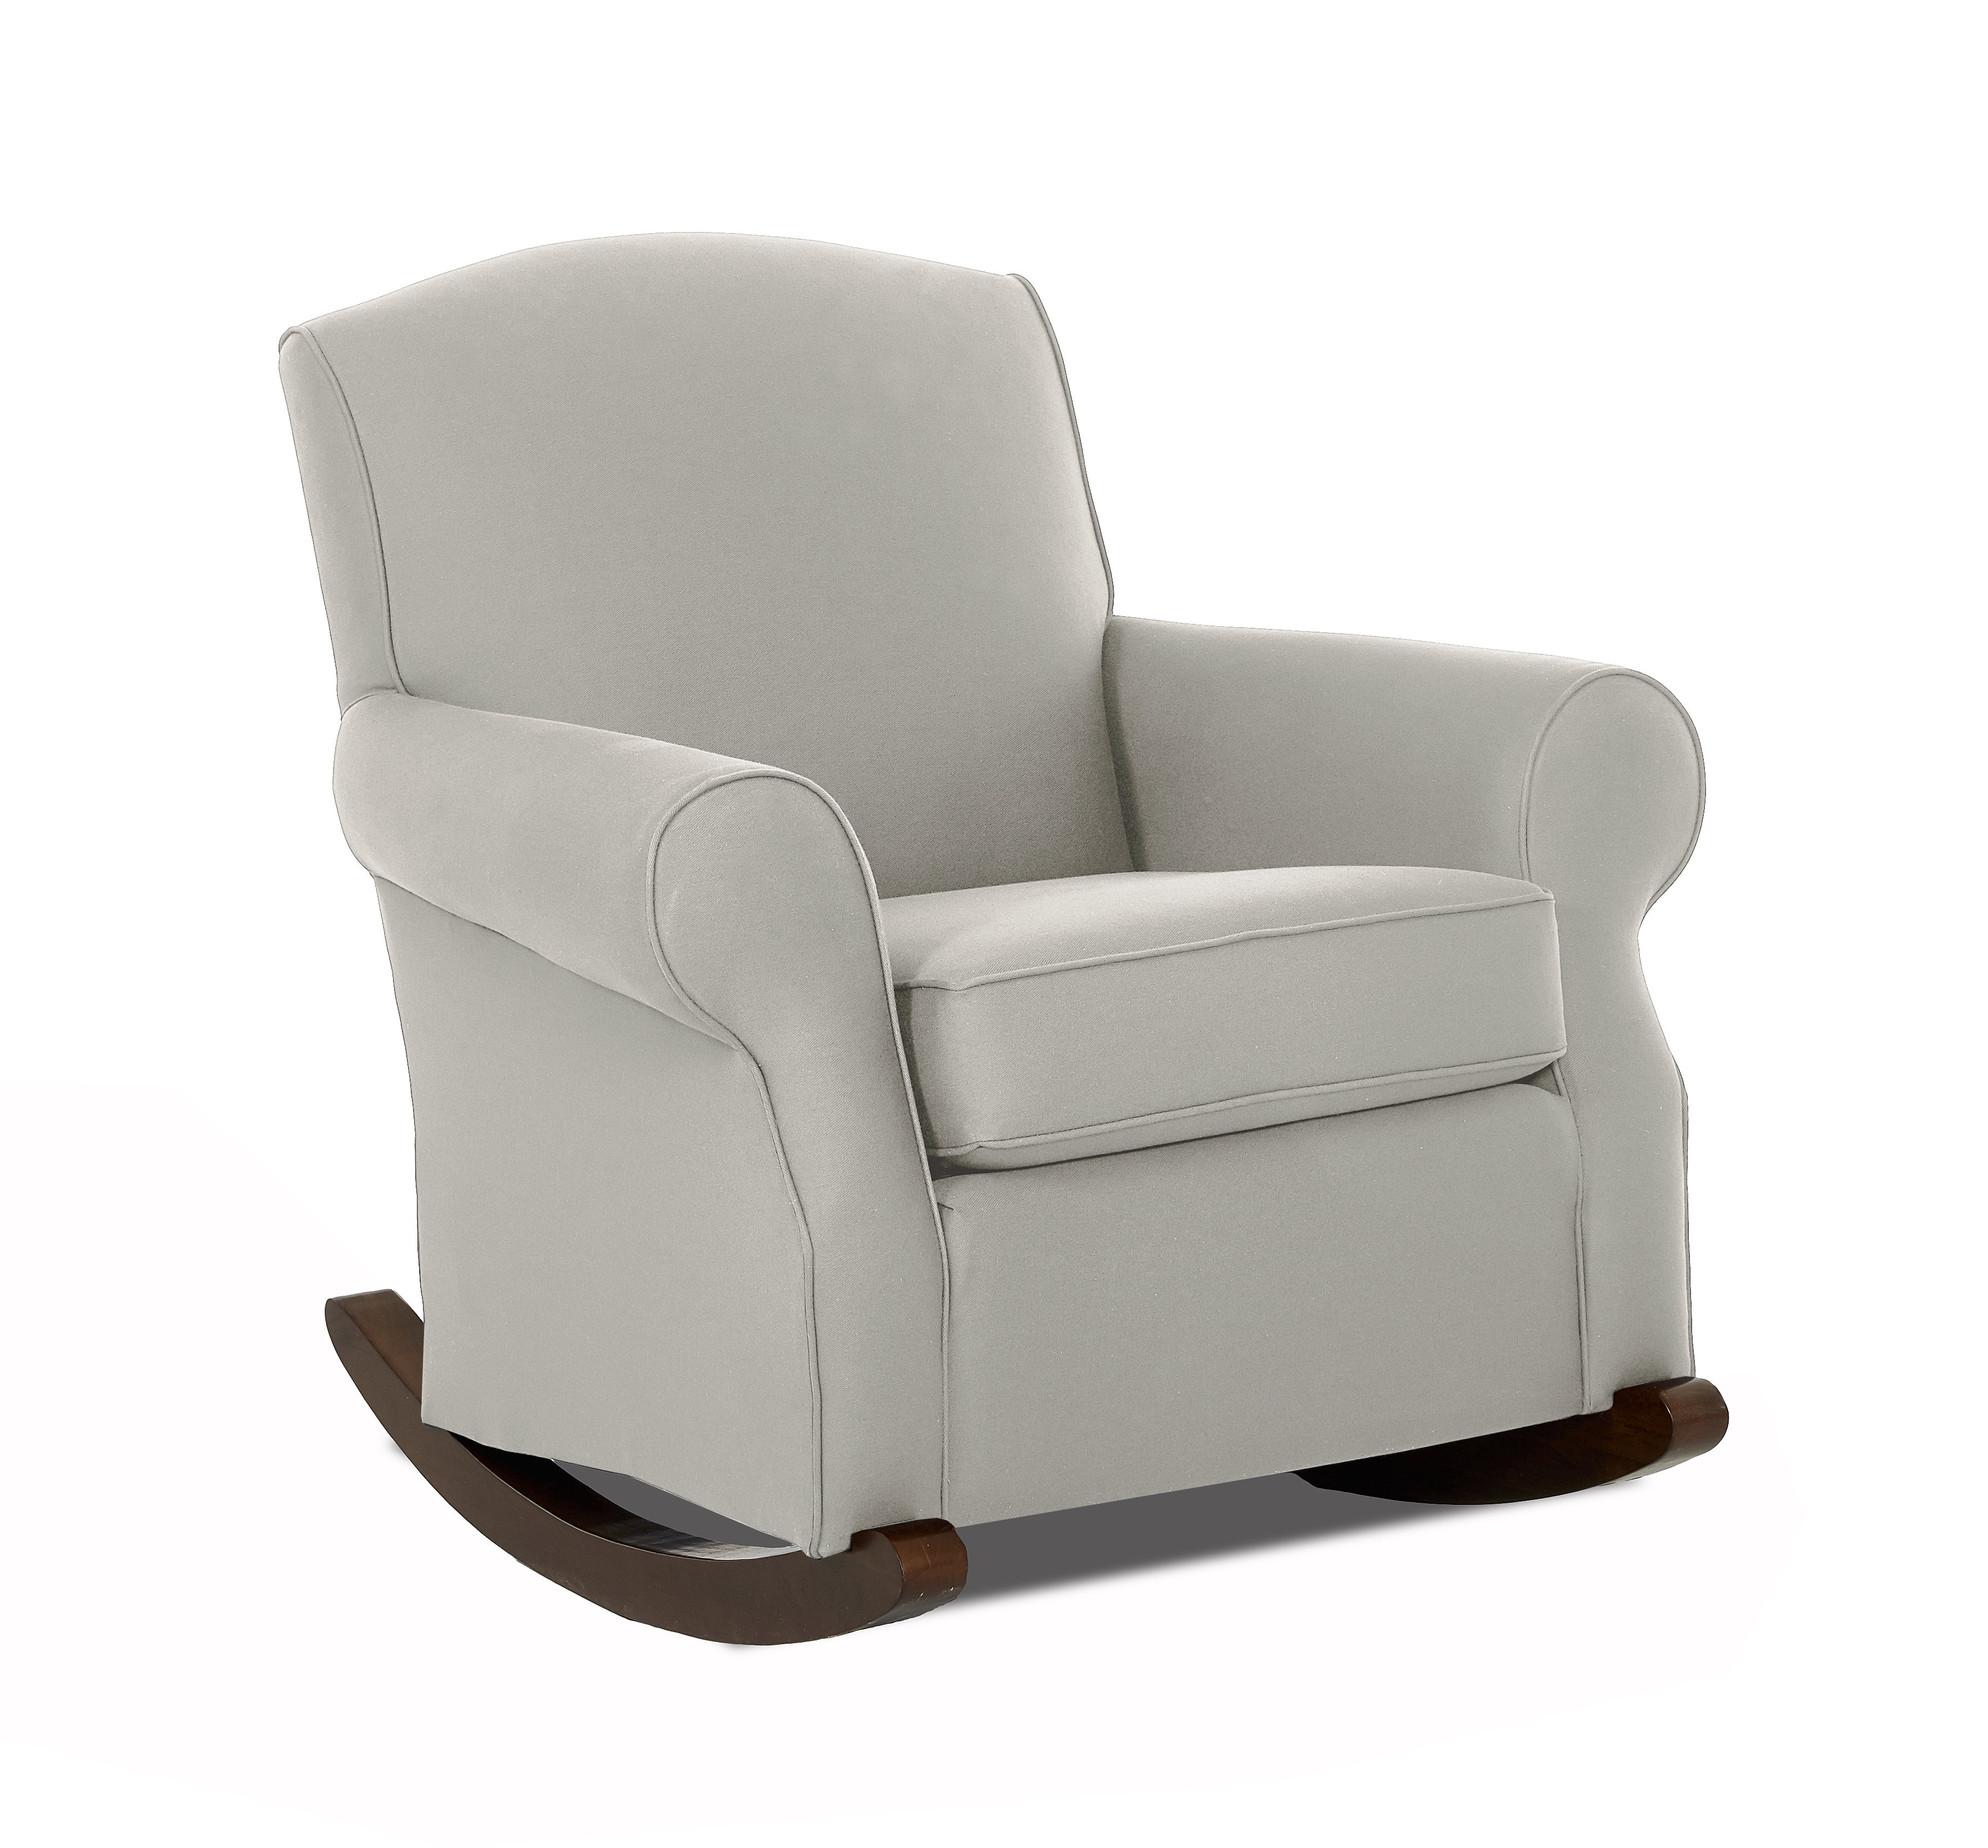 Wayfair Custom Upholstery™ Marlowe Rocking Chair | Wayfair Within Katrina Grey Swivel Glider Chairs (Image 19 of 20)